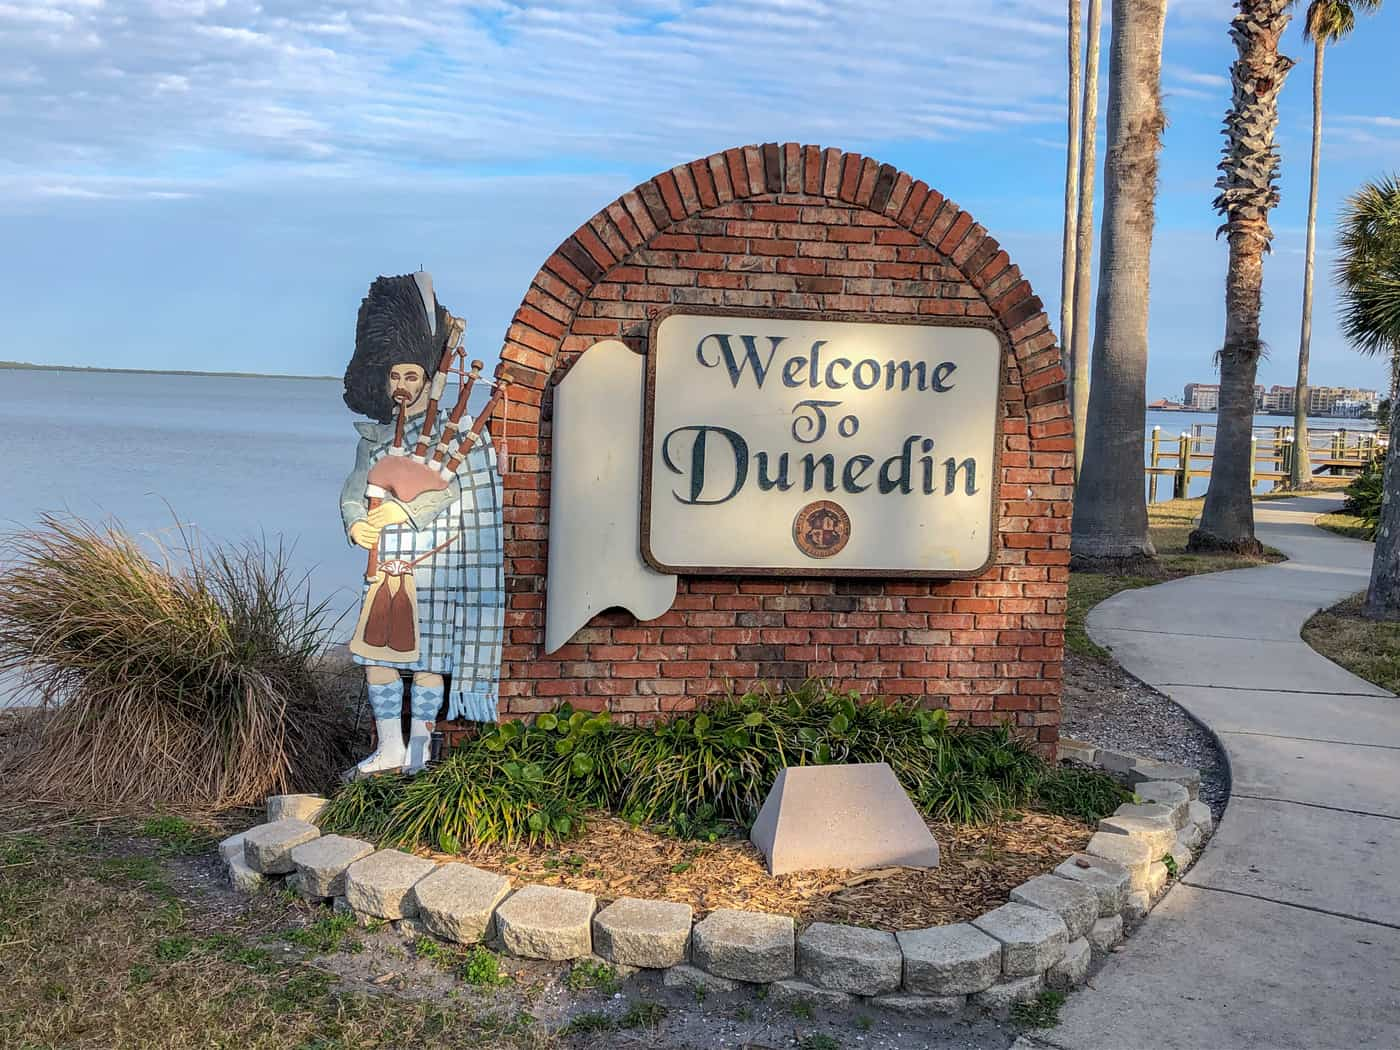 Sign at entrance to Dunedin, FL